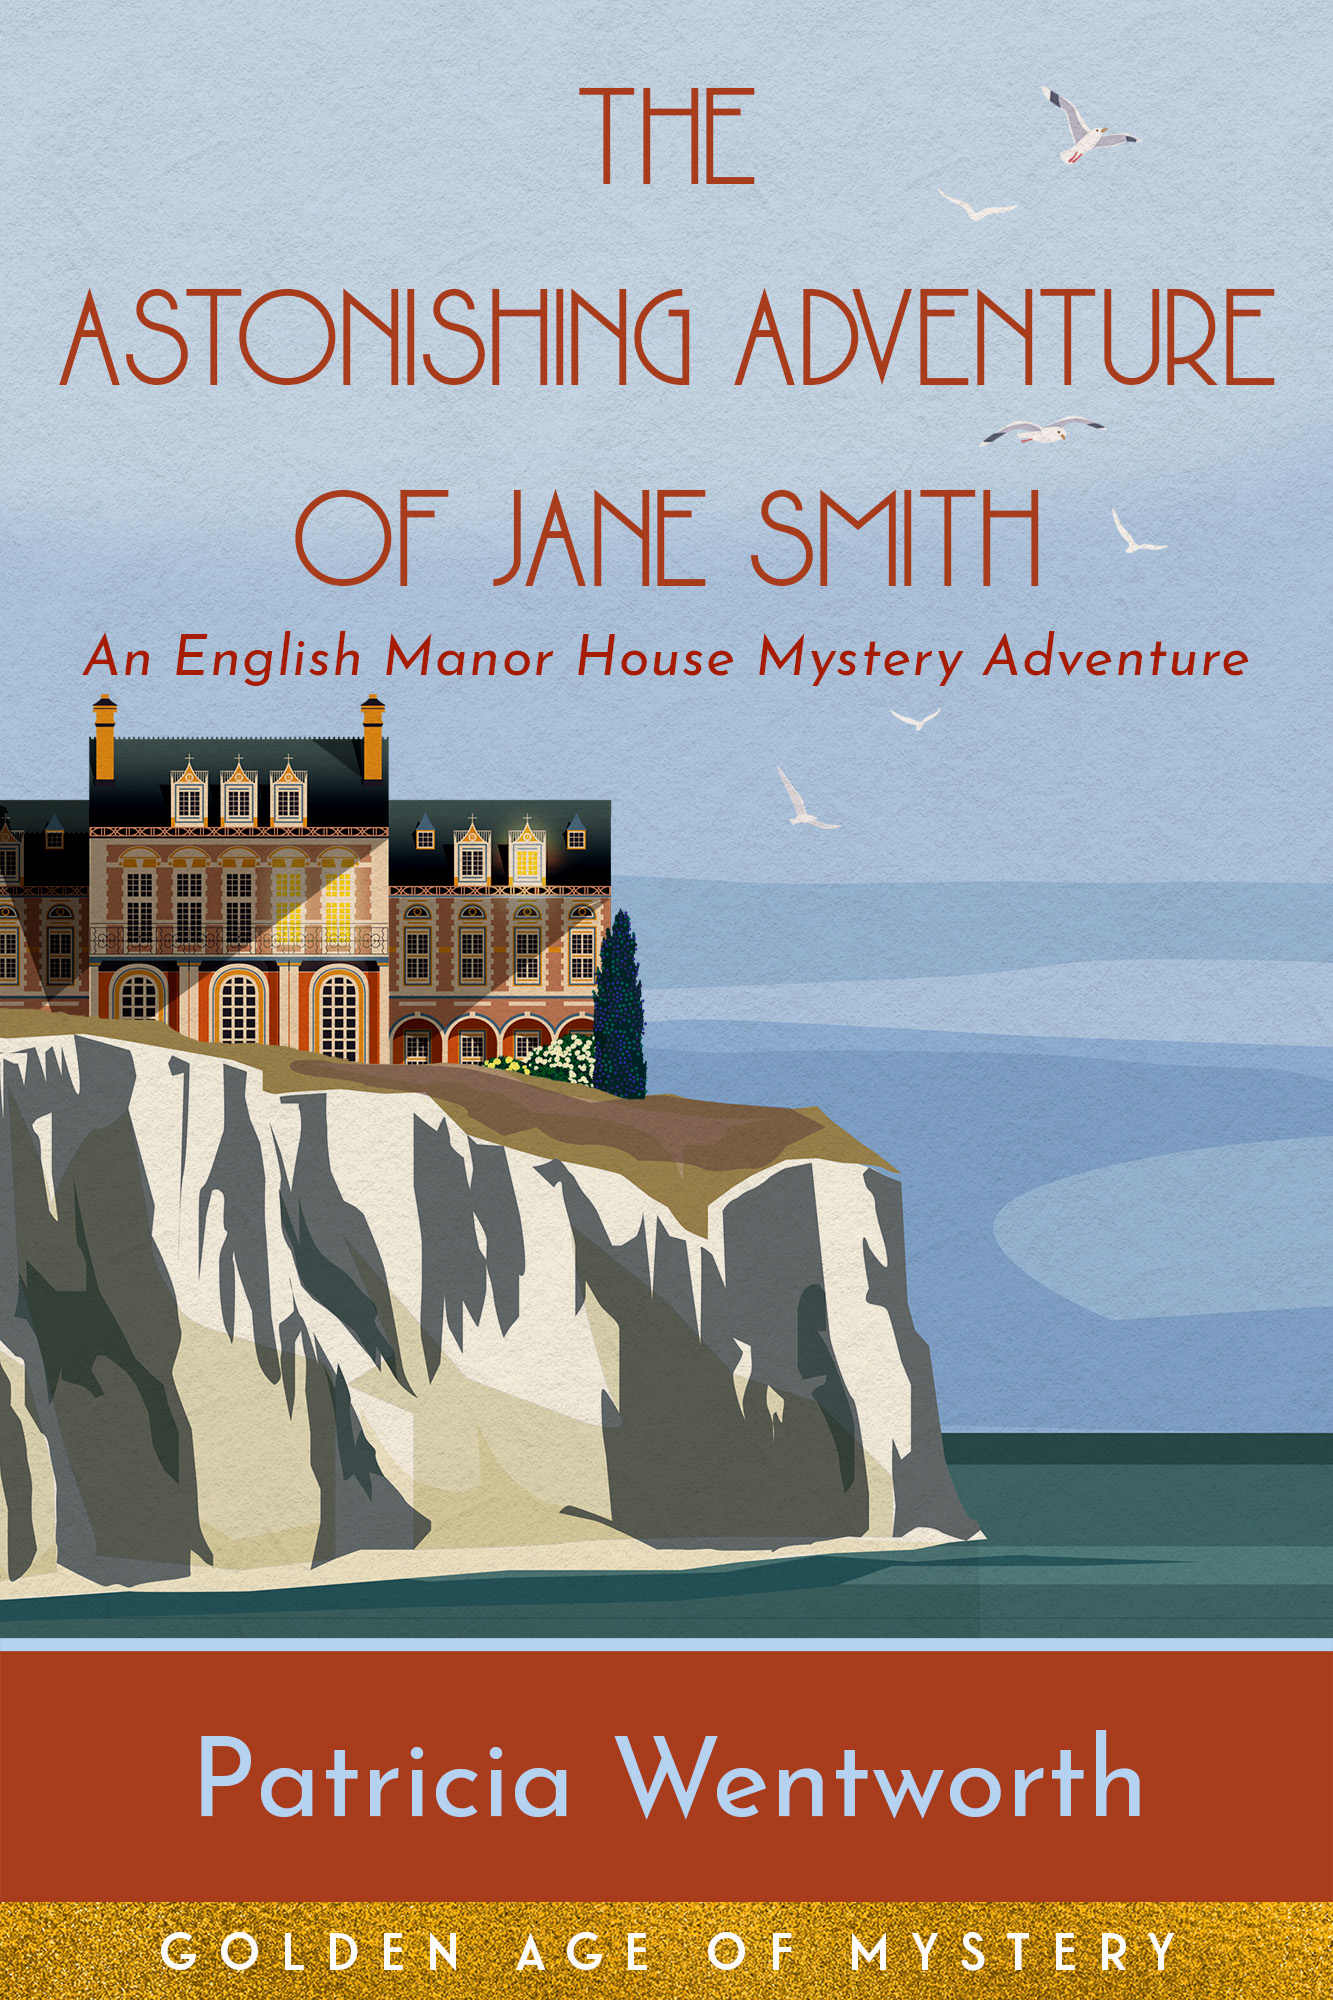 The Astonishing Adventure of Jane Smith